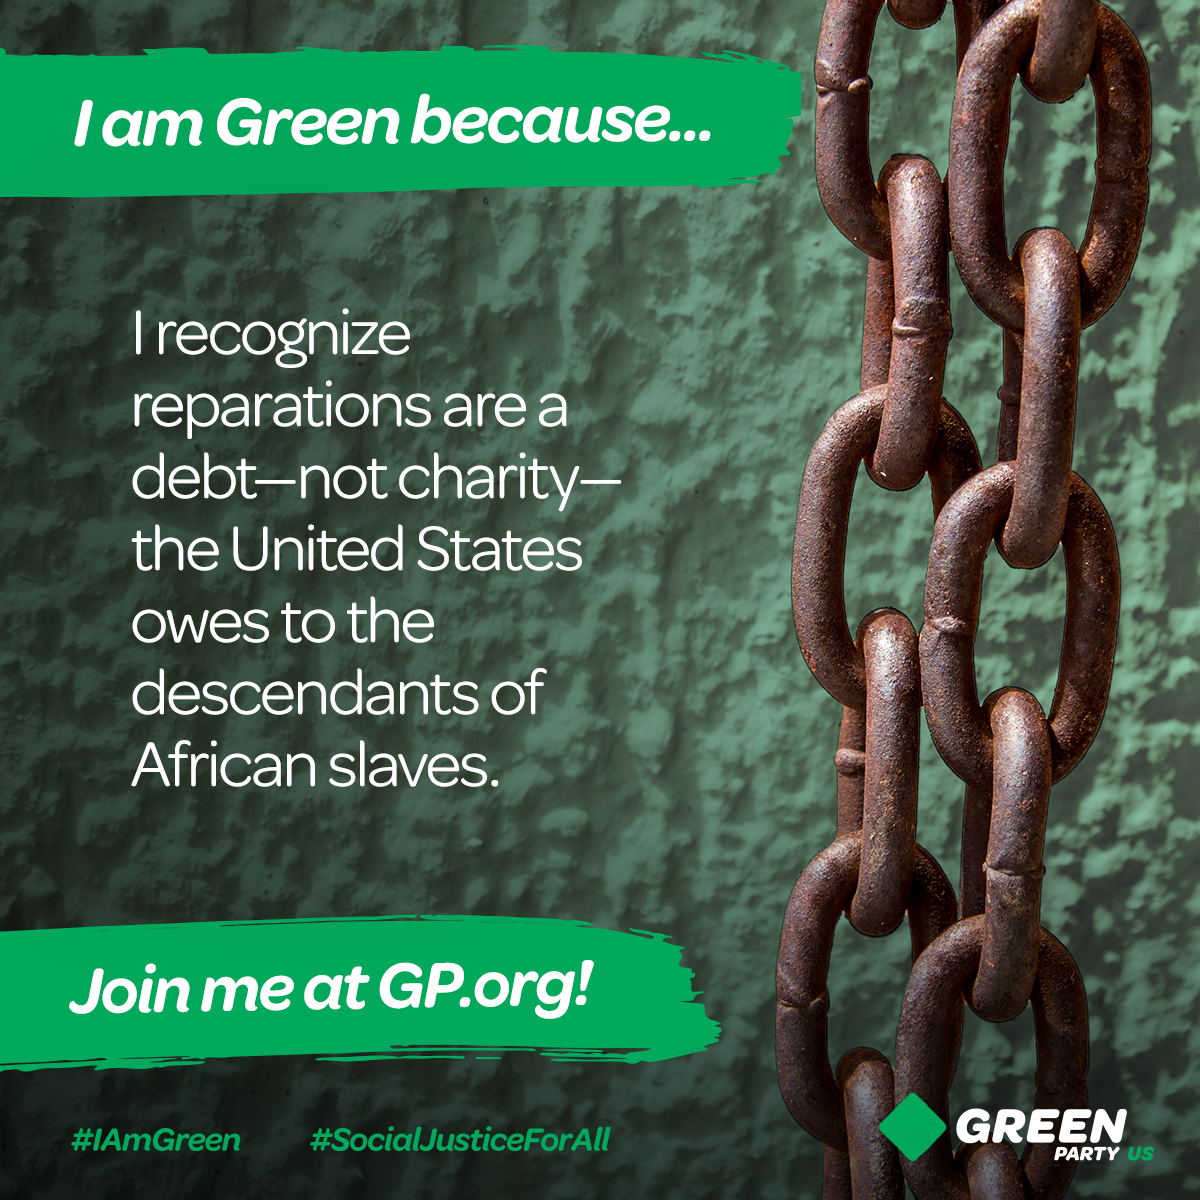 GPUS_m_IamGreen-Reparations_3.png